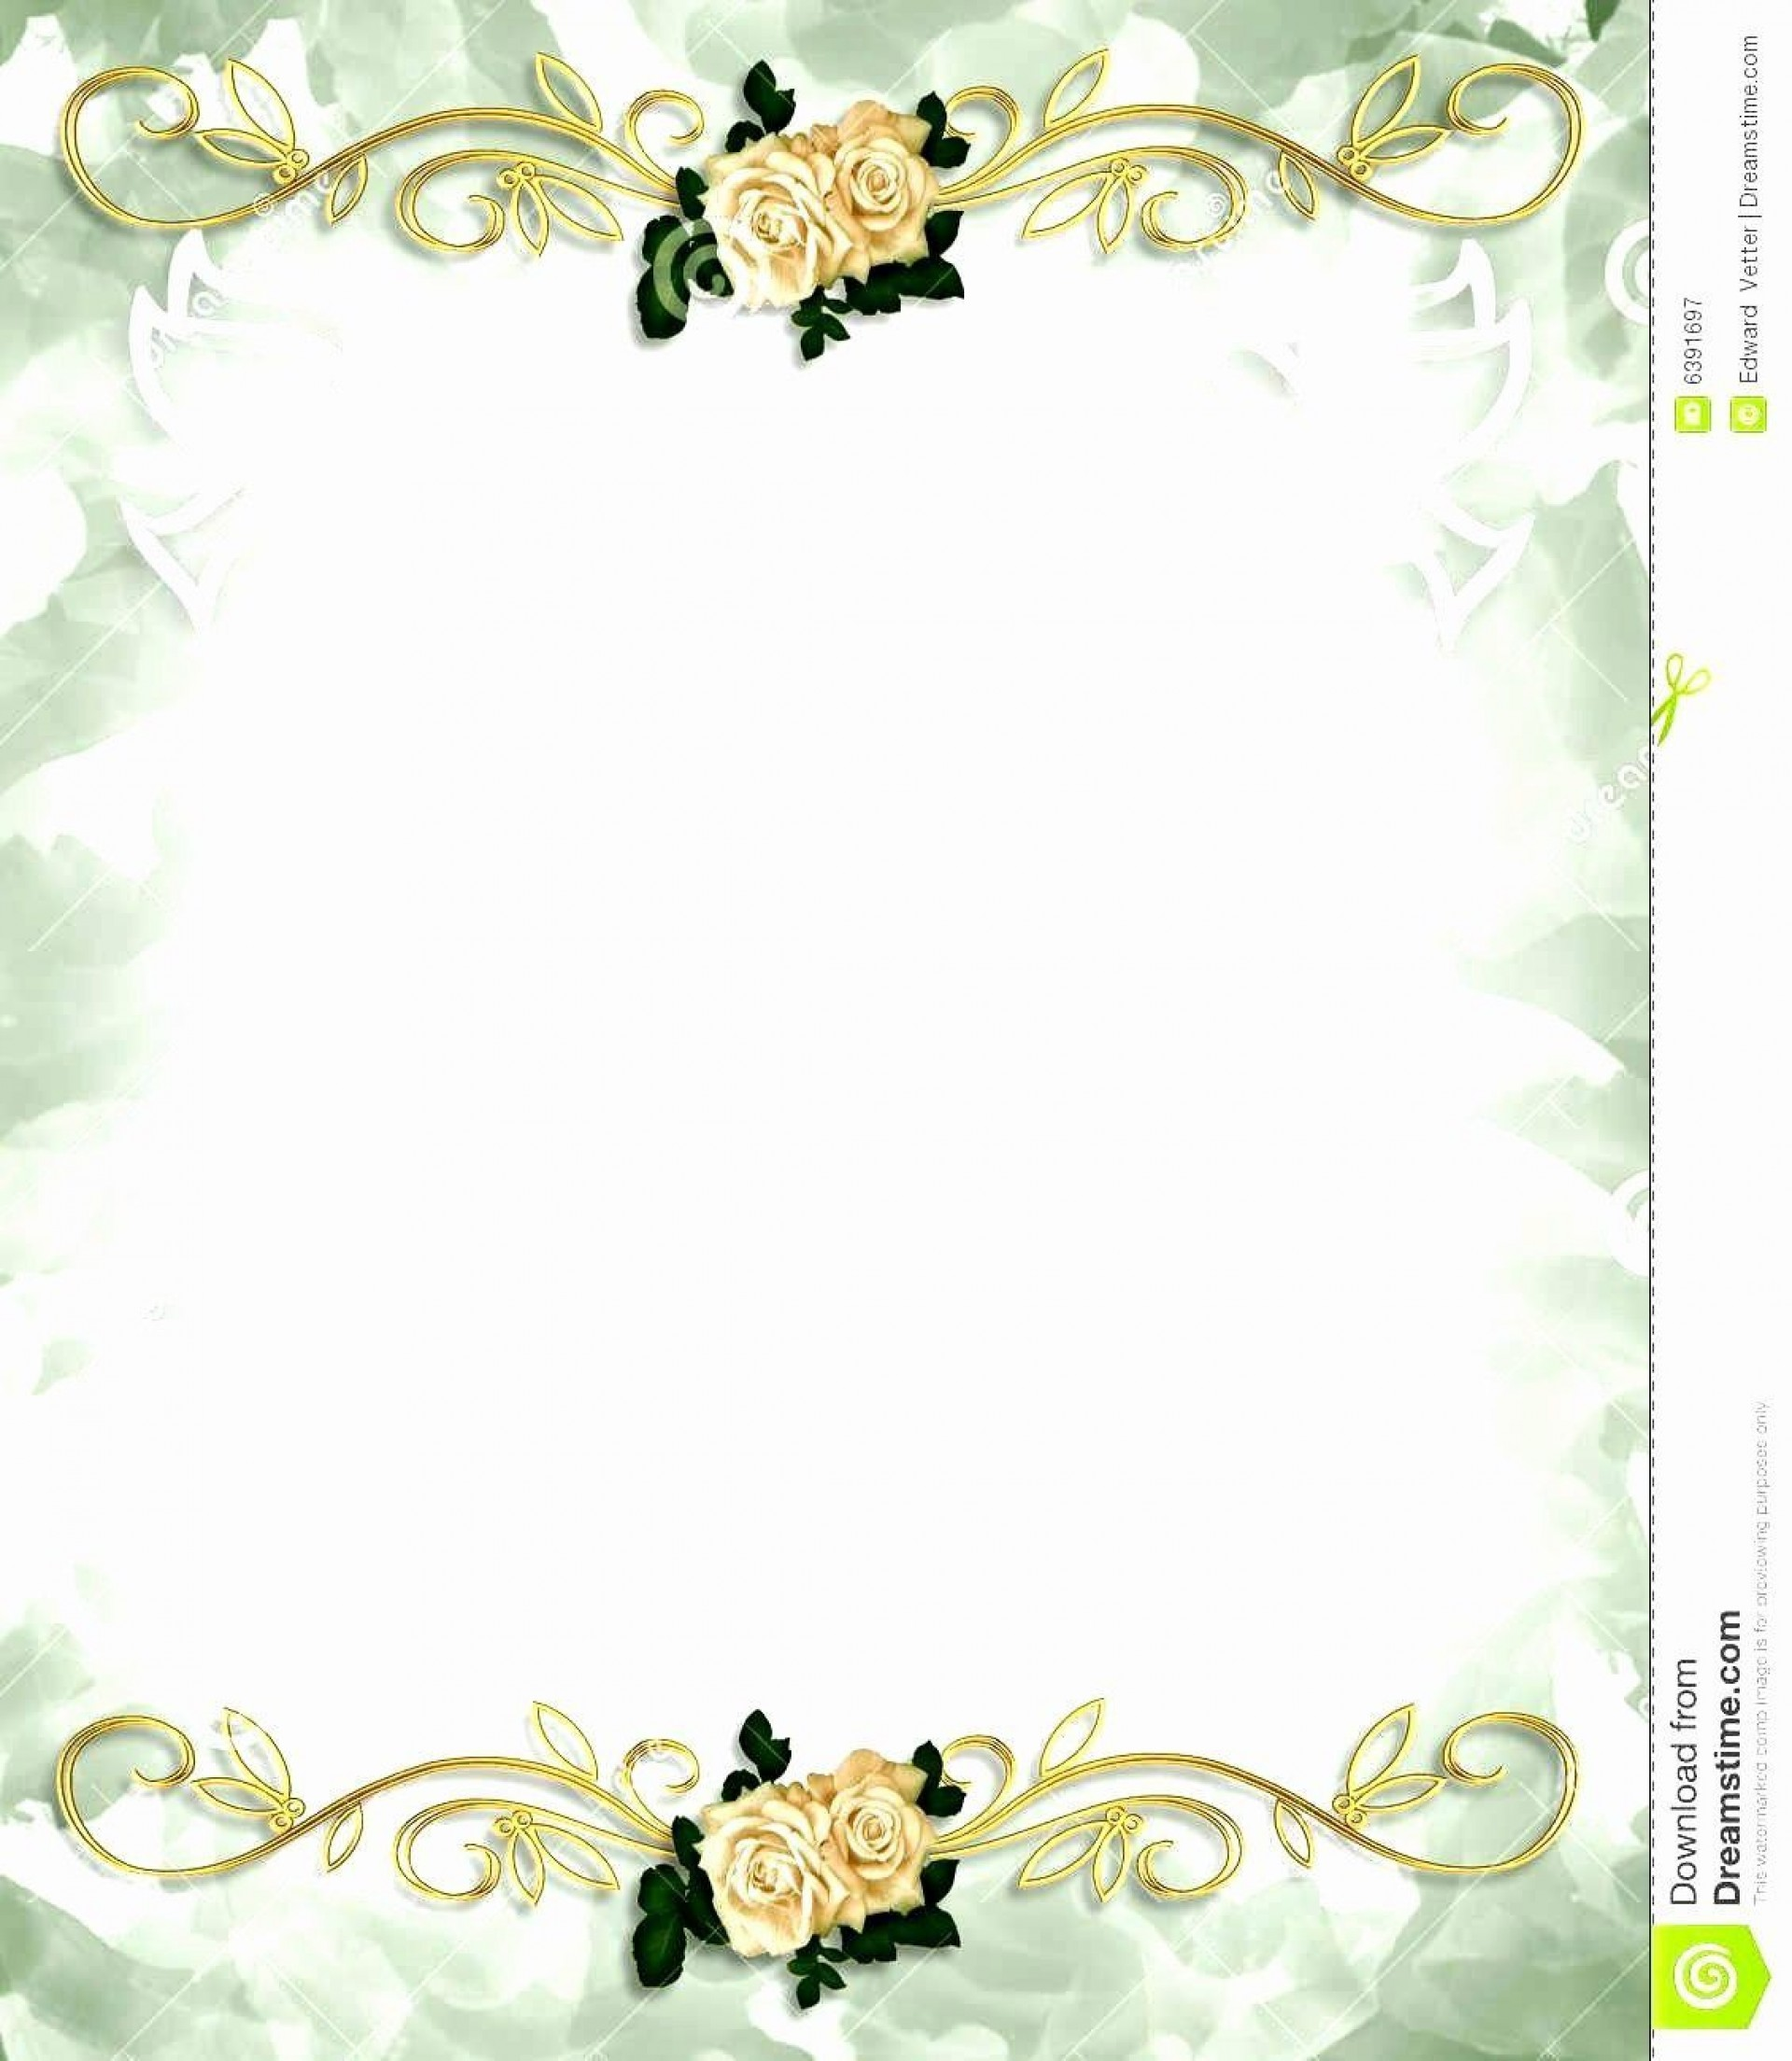 001 Top Free Download Invitation Card Template Highest Clarity  Templates Indian Wedding Design Software Png1920